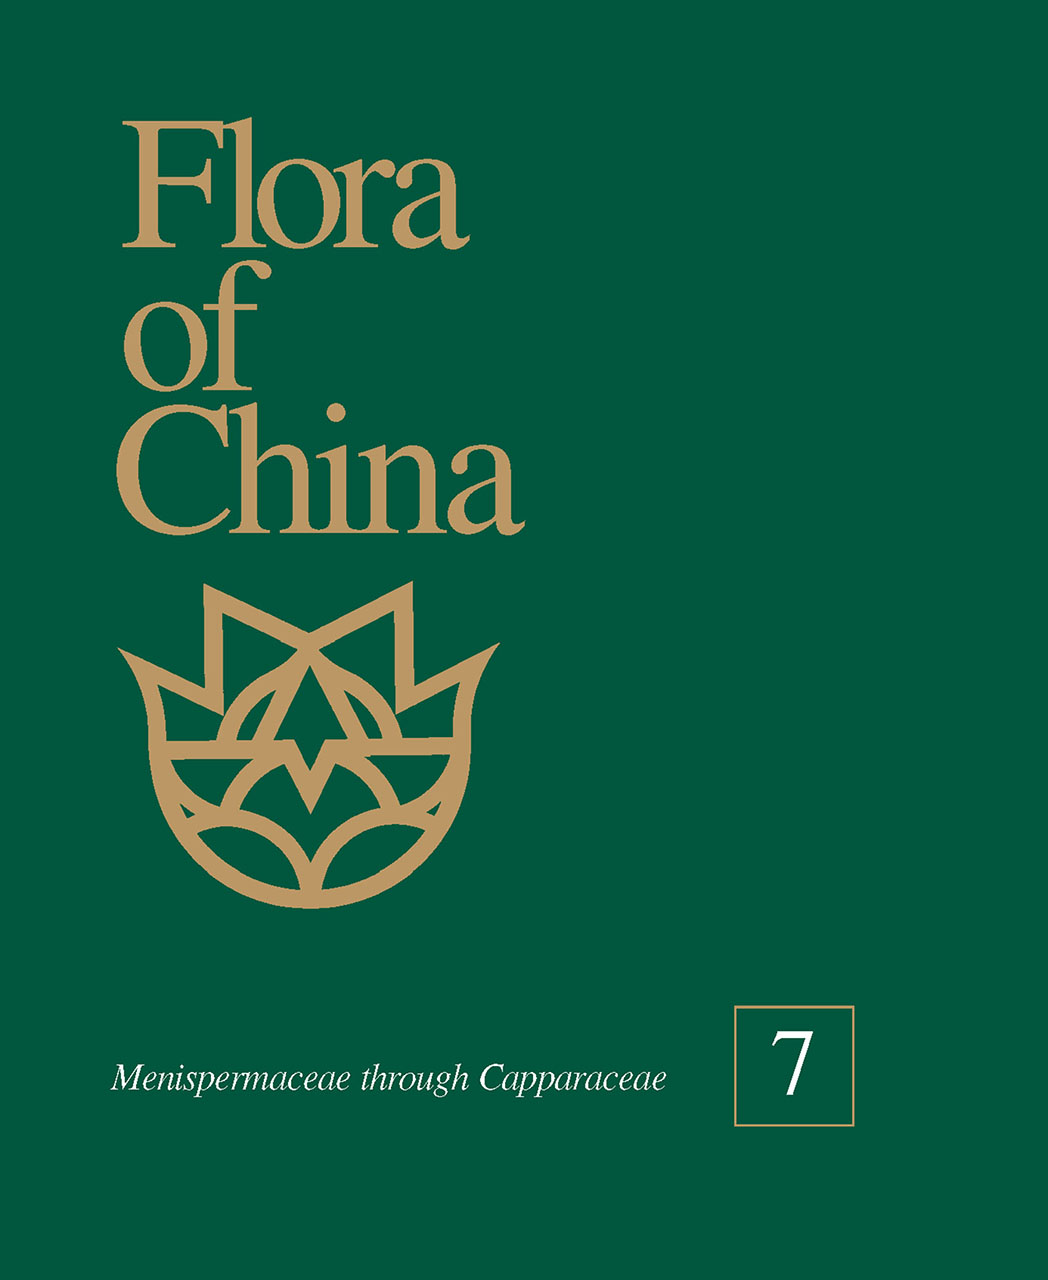 Flora of China, Volume 7